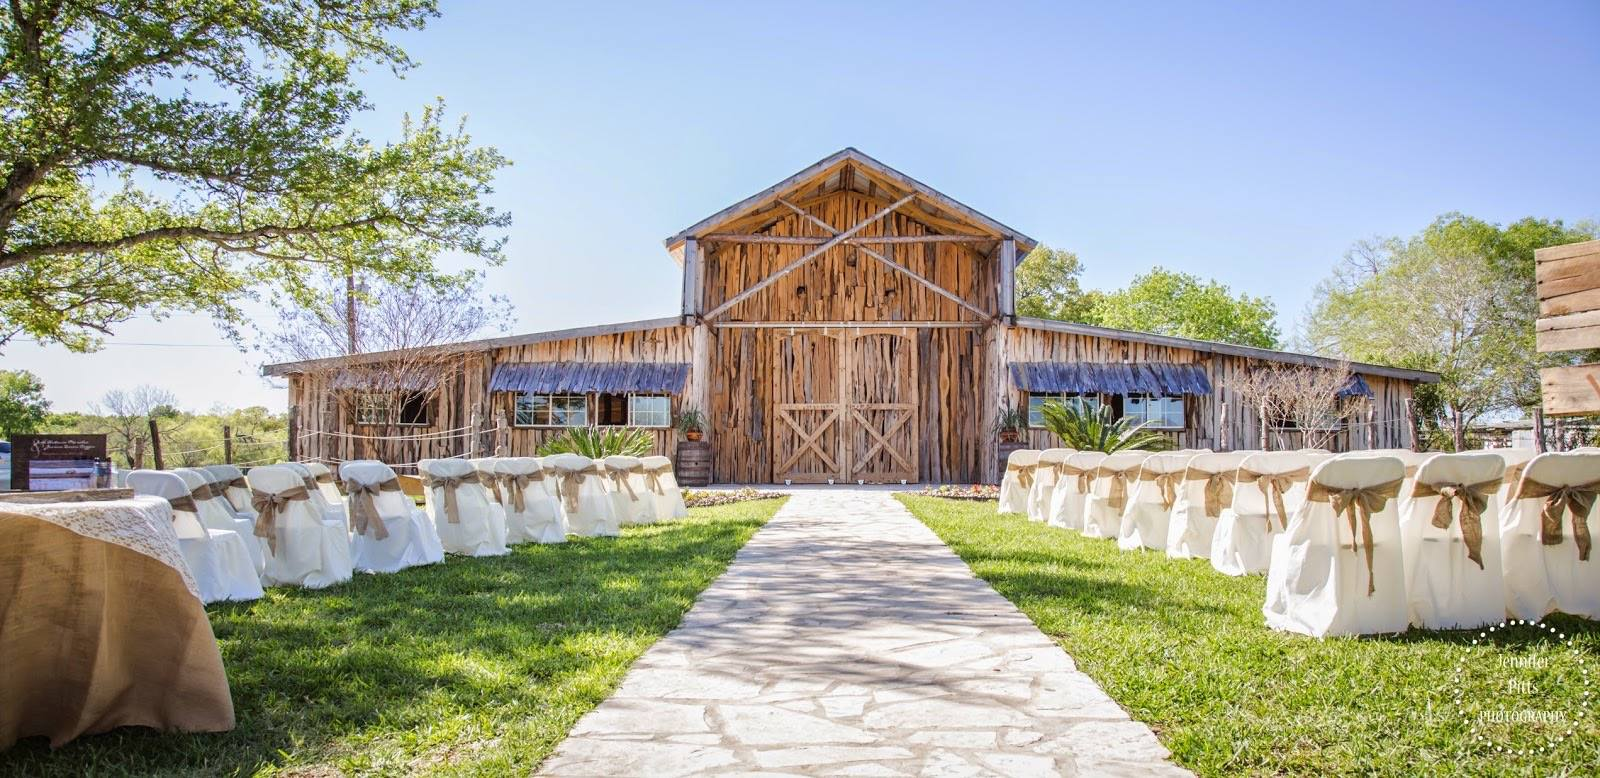 Rancho La Mission | Venues & Event Spaces in 14047 Henze Rd - San Antonio TX - Reviews - Photos - Phone Number